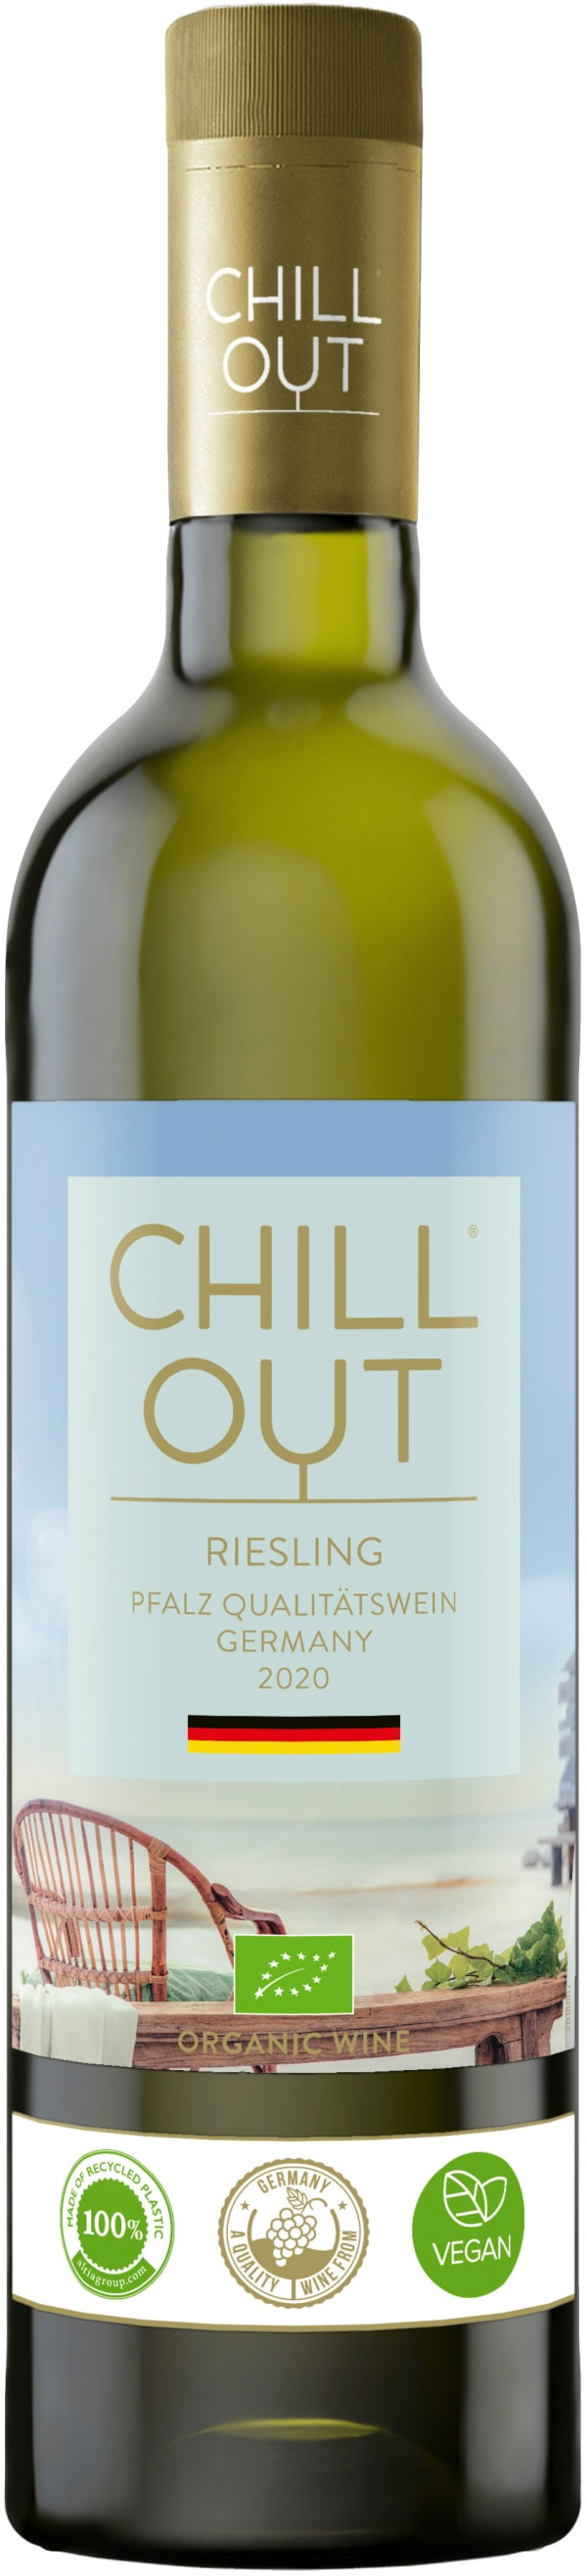 Chill Out Riesling 2017 muovipullo